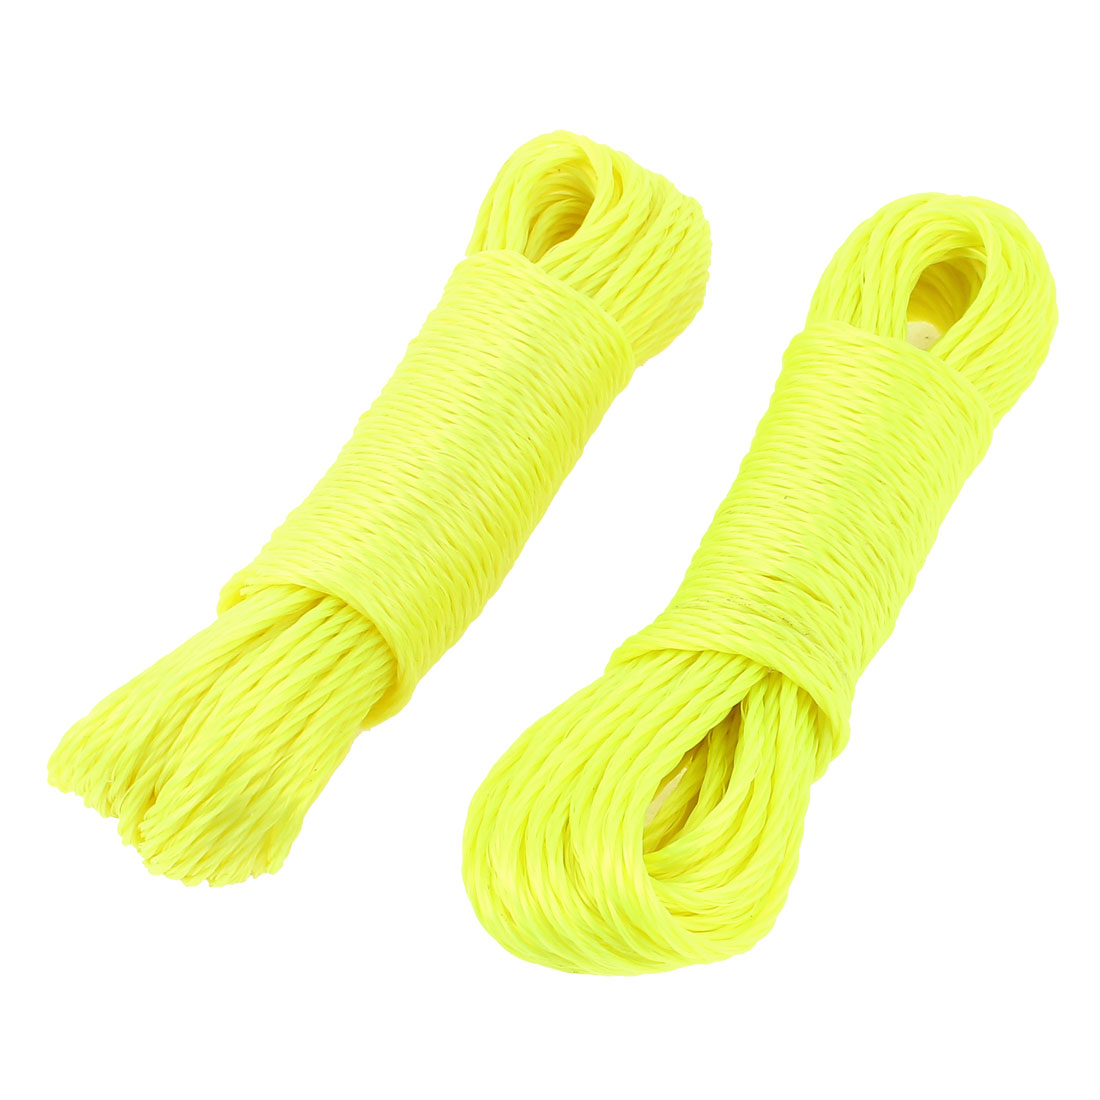 20M Nylon Clothes Line Washing Clothesline Rope Laundry Dryer 2pcs